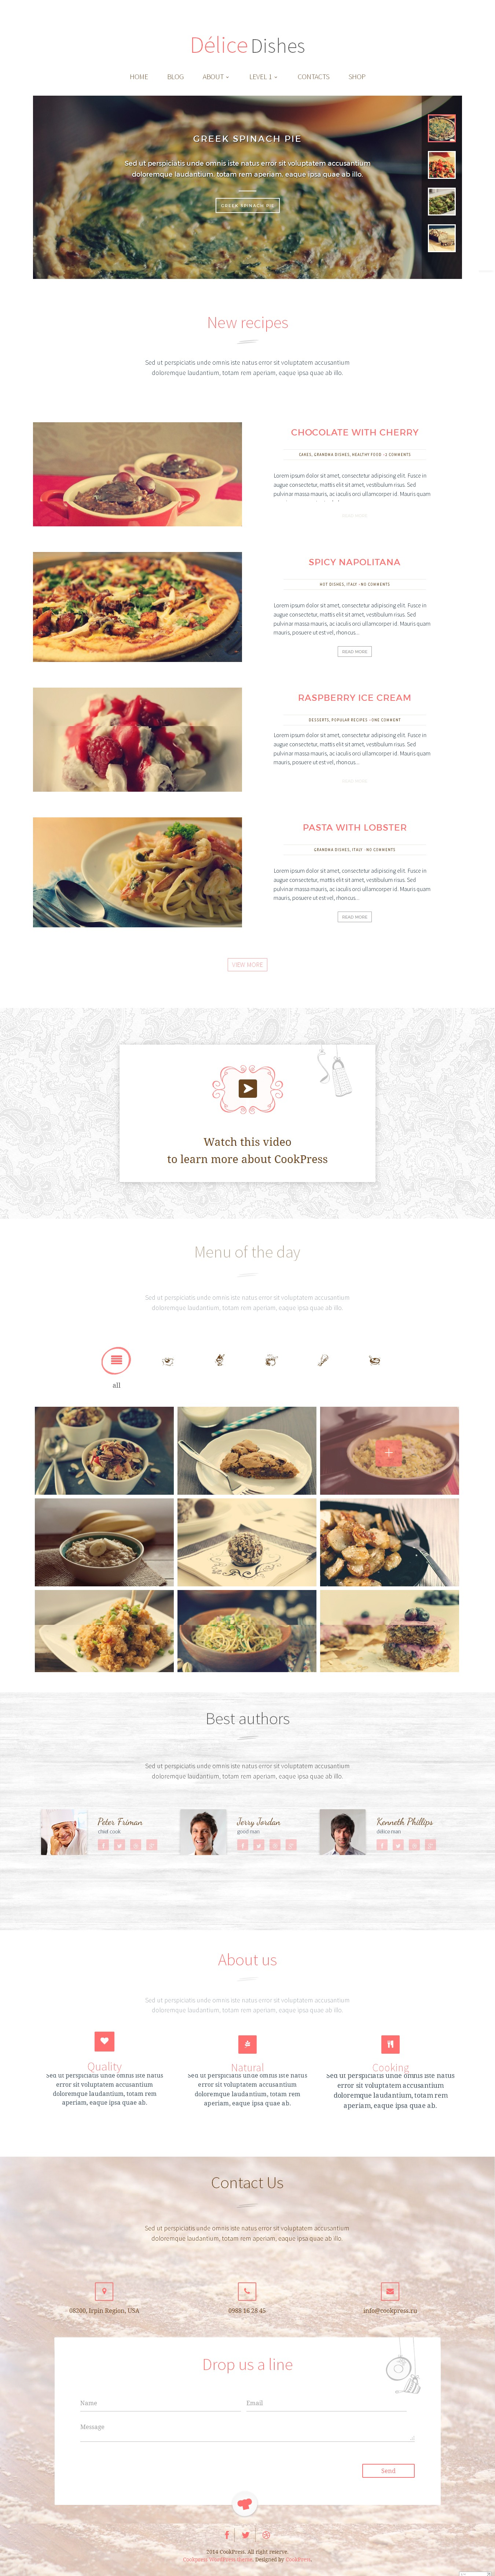 delice dishes light wp cook theme \u2022 by cookpress  american regional cuisine firefox.php #1